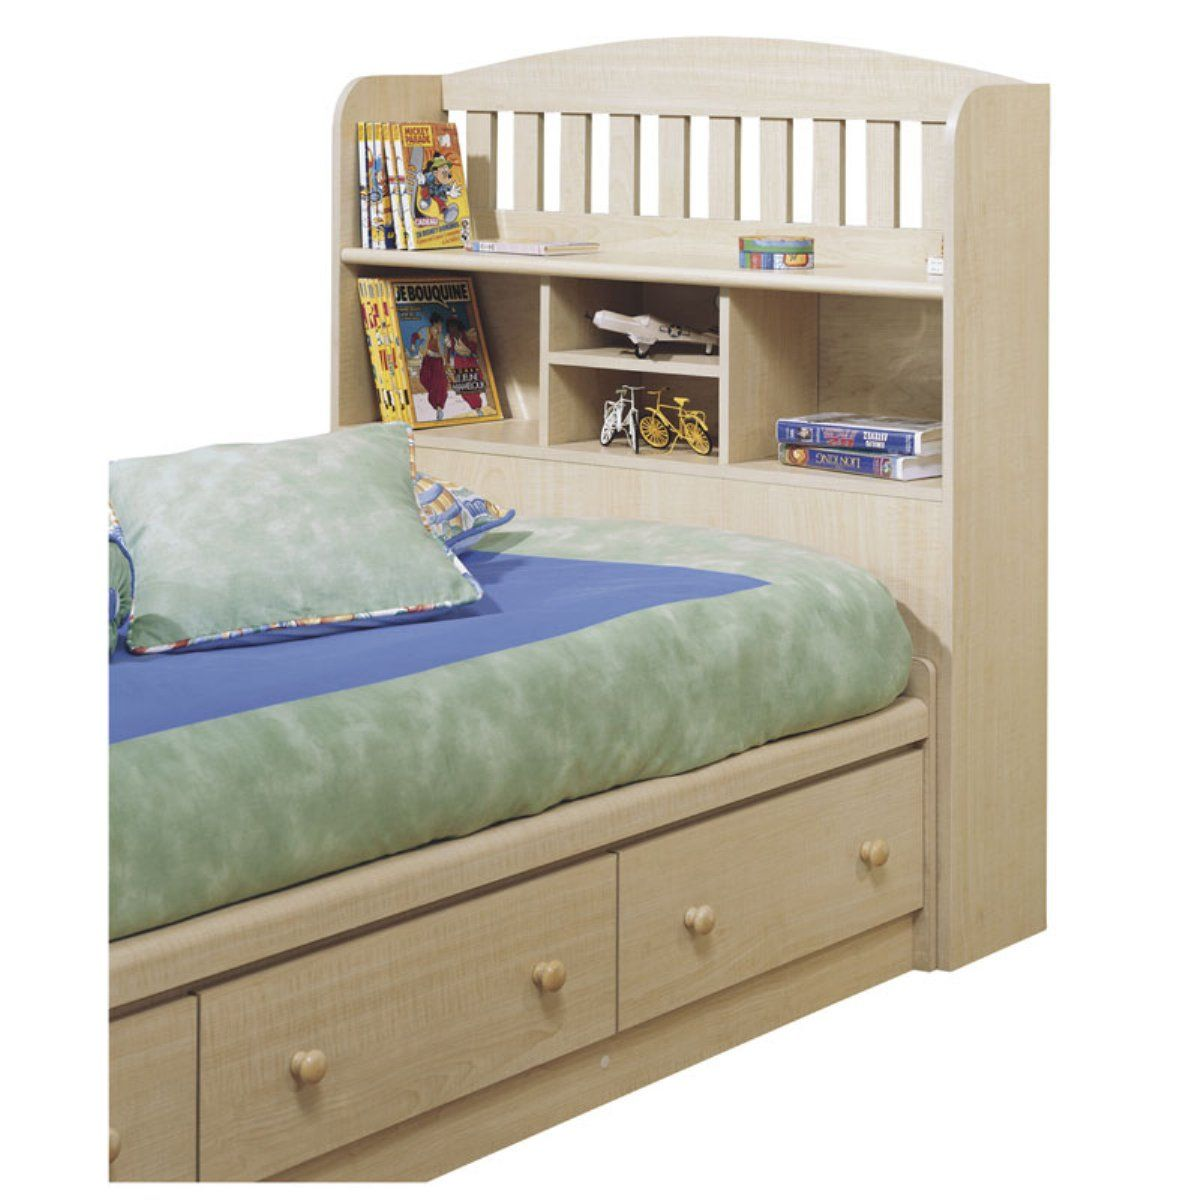 Stylish Headboard Kids Bed With Bookshelf Pictures Boys